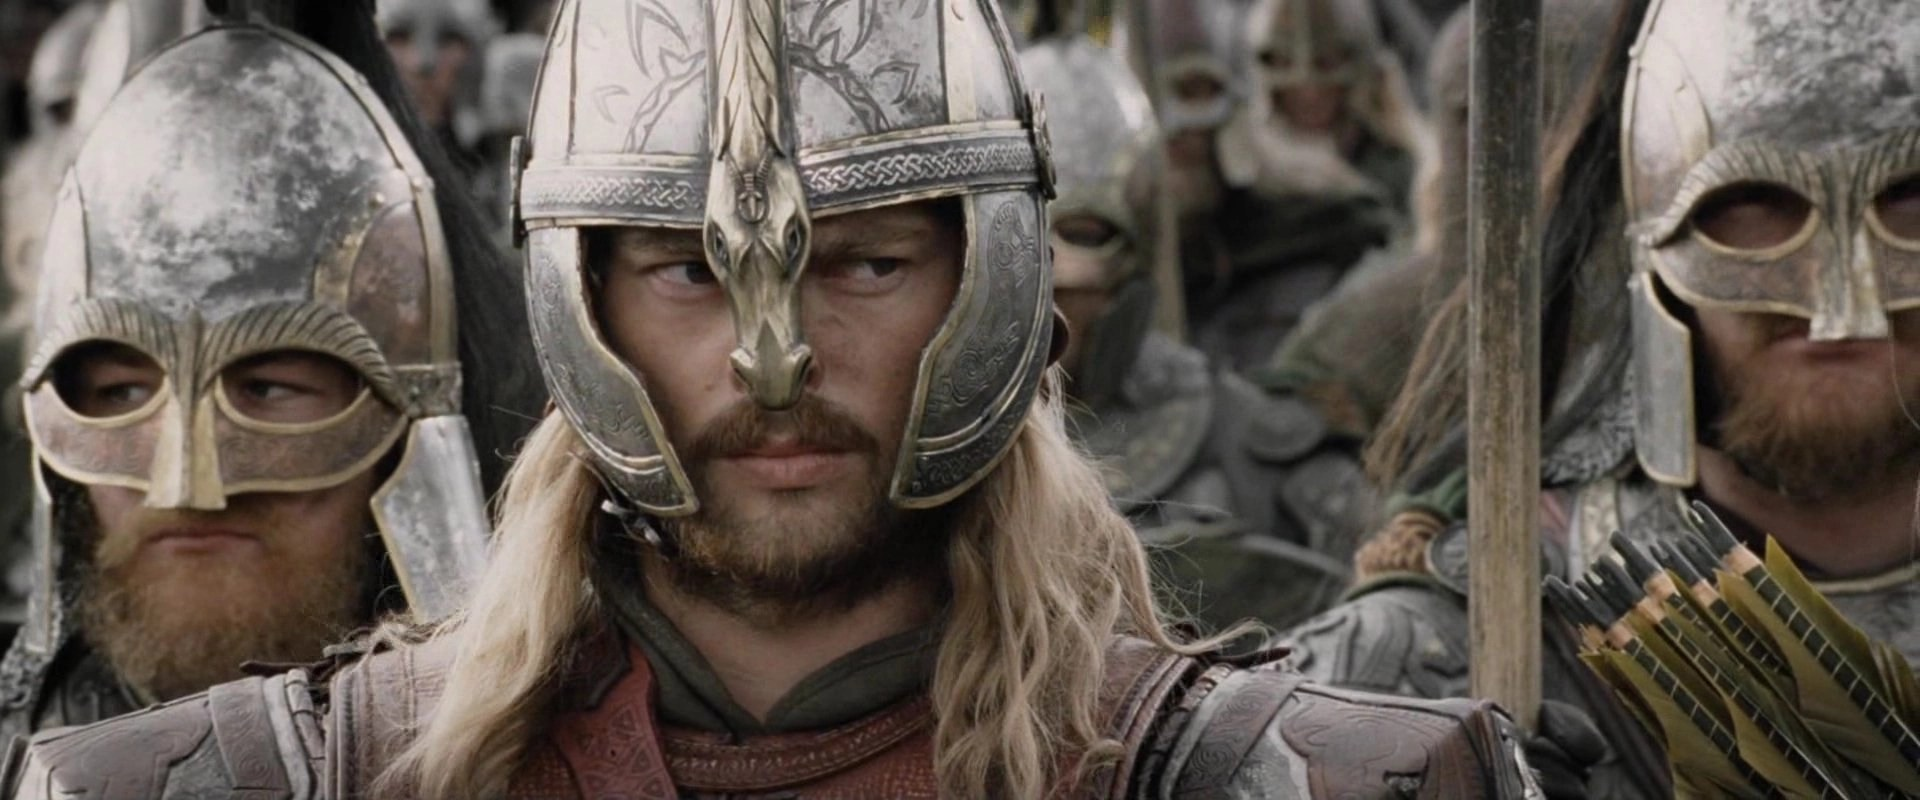 eomer the two towers karl urban the old shelter. Black Bedroom Furniture Sets. Home Design Ideas